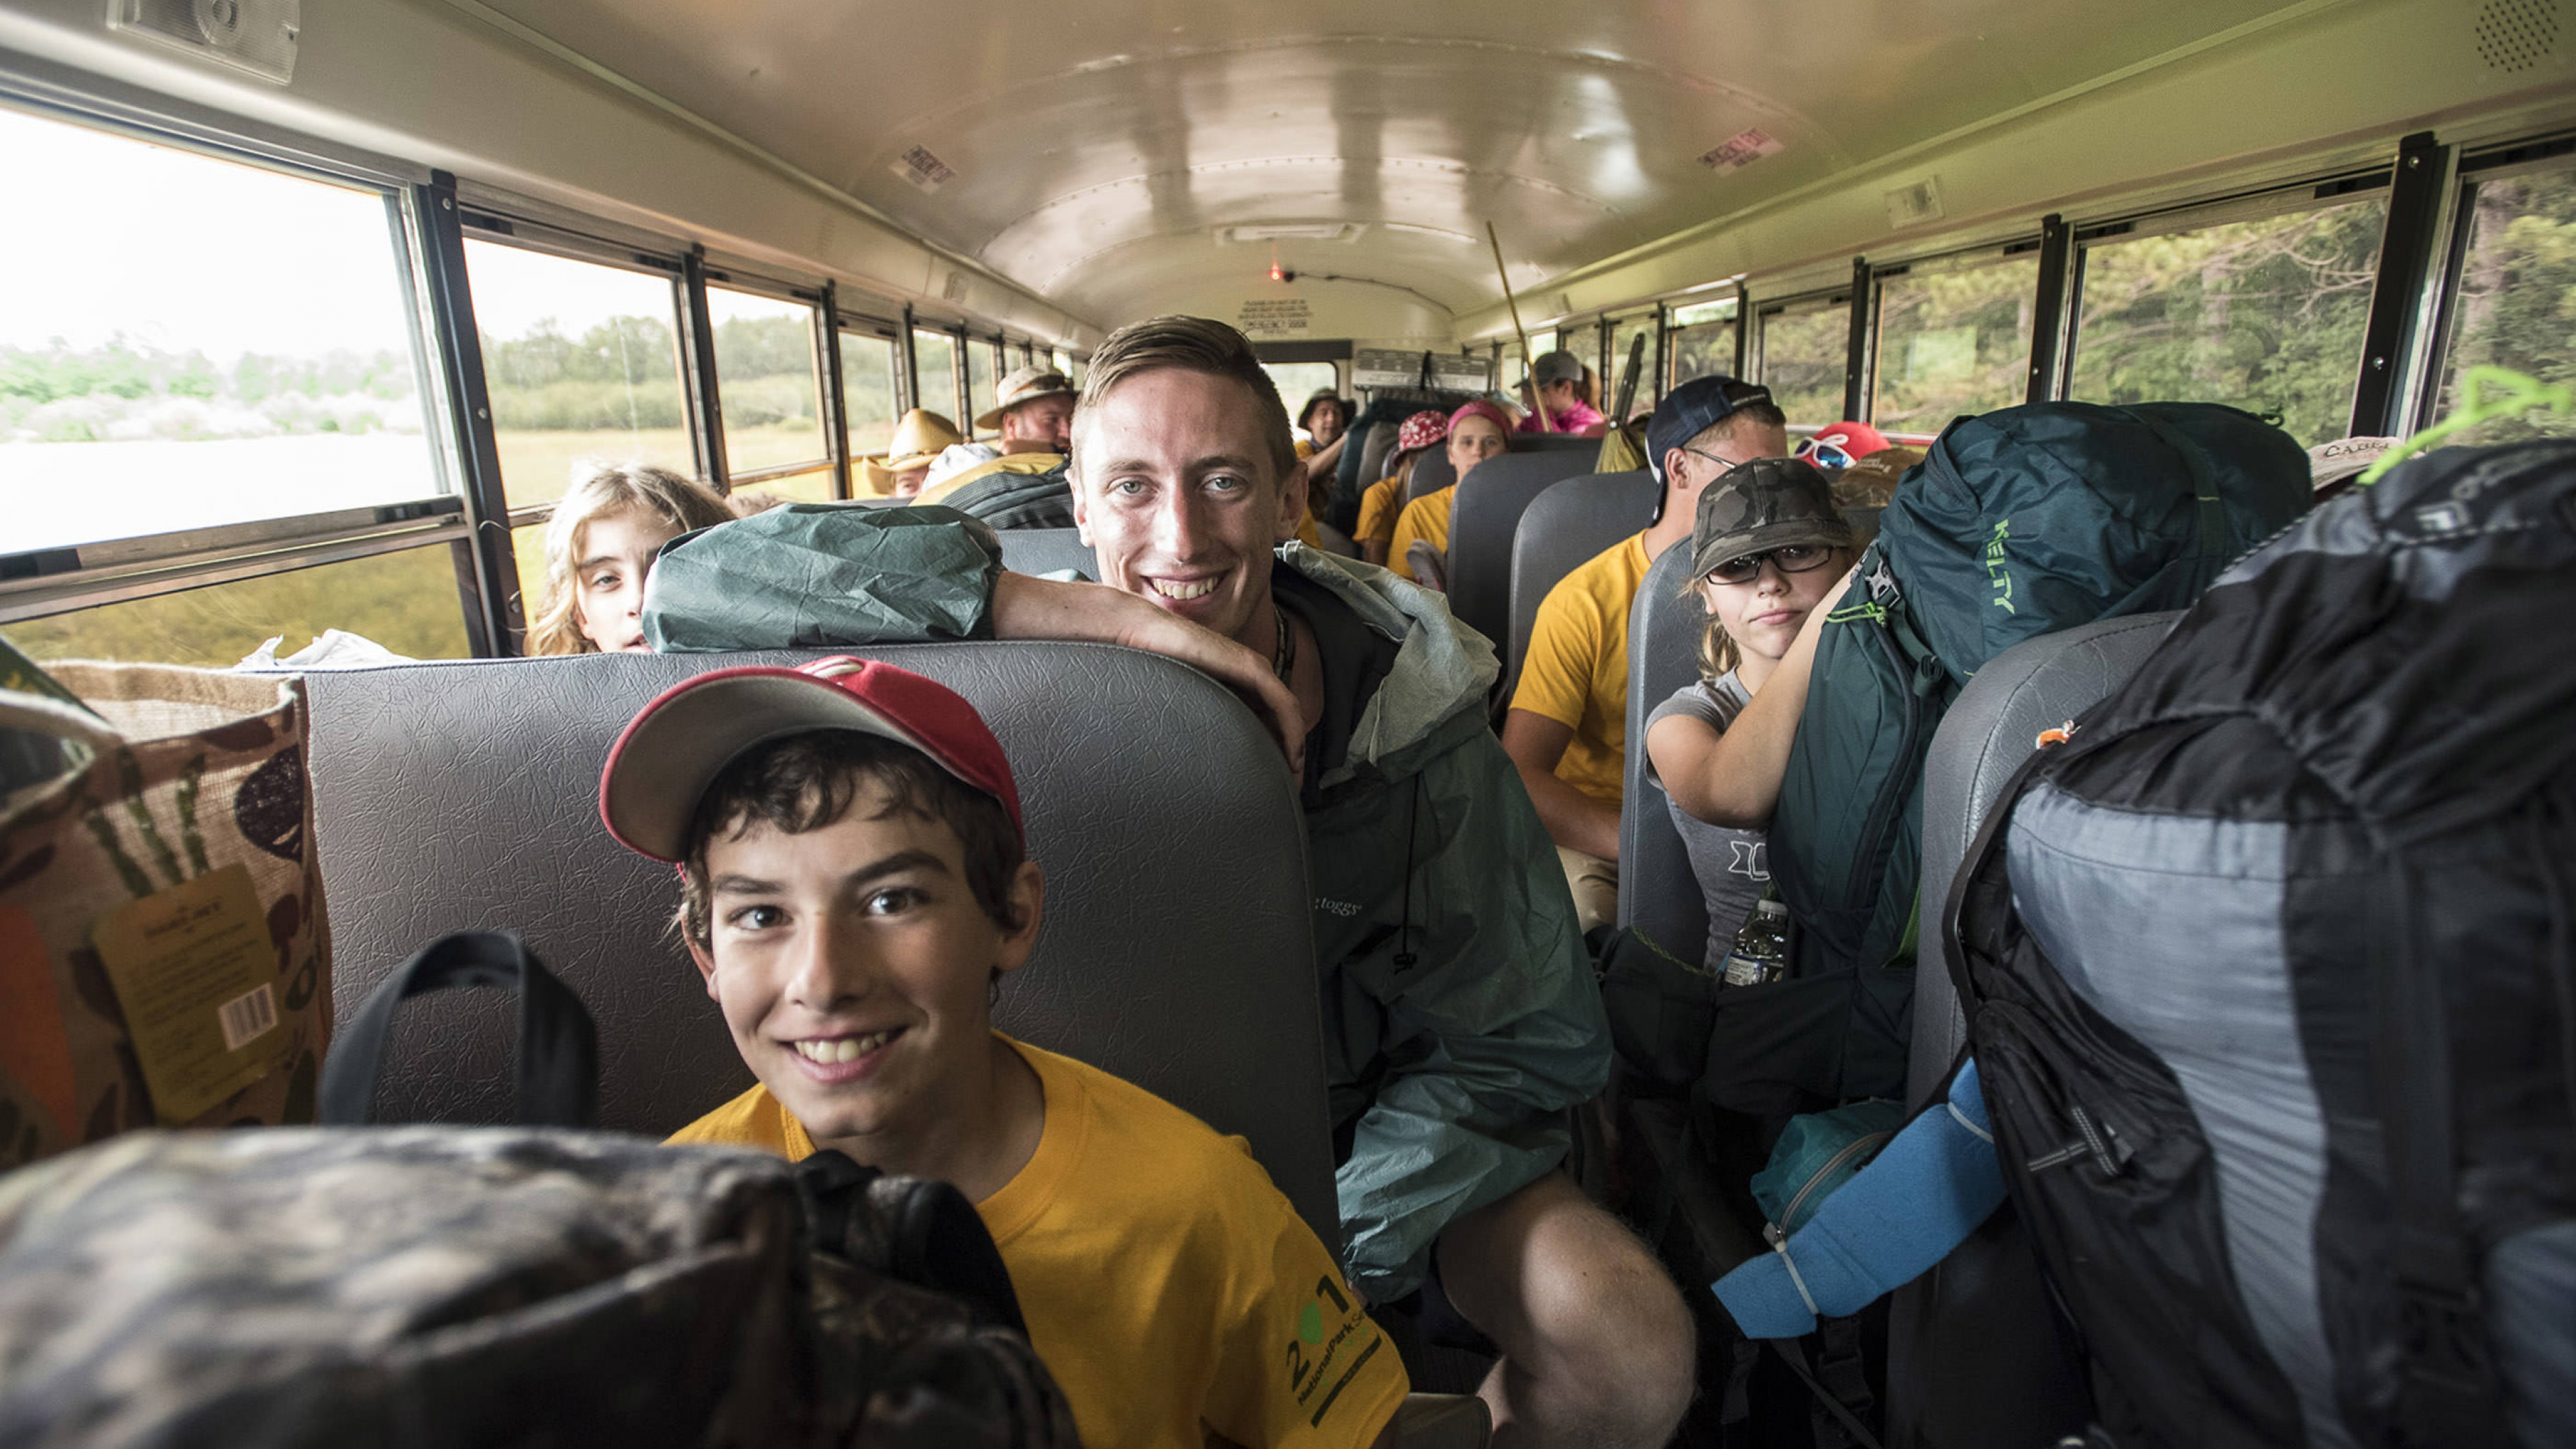 Inside a bus filled with kids